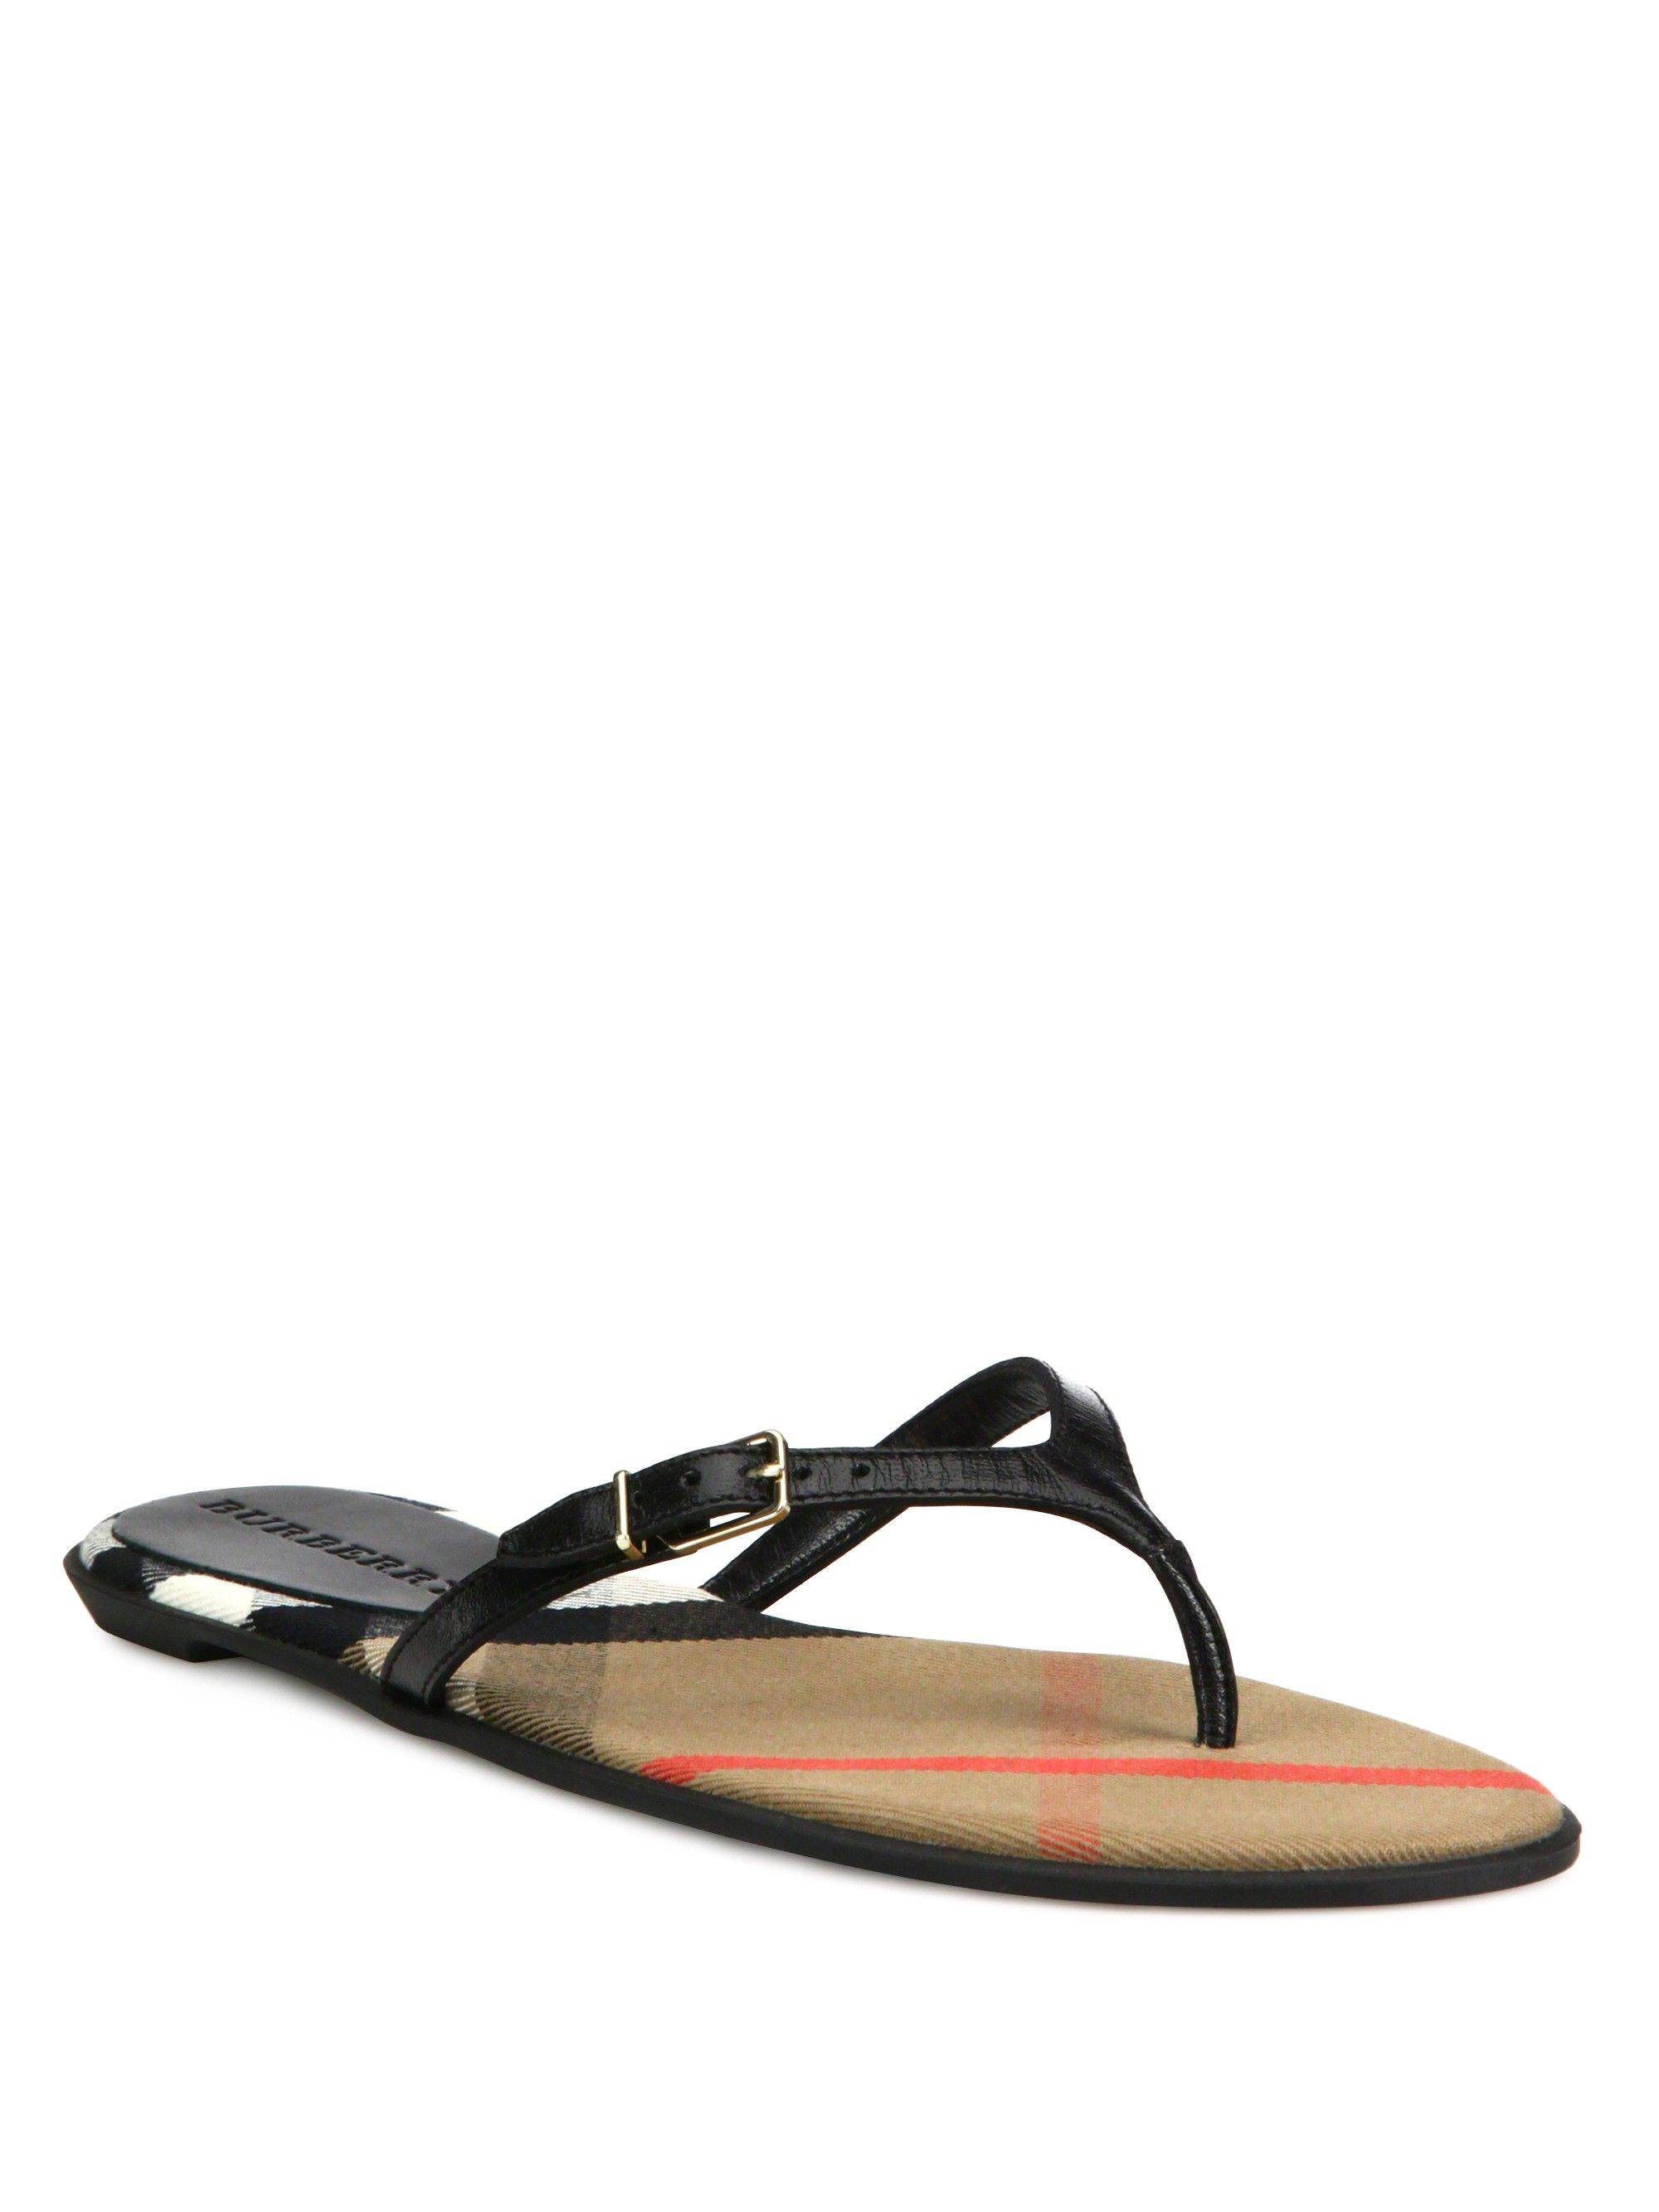 02da09c1f215 BURBERRY Meadow Leather Flip Flops.  burberry  shoes  all Black Slip On  Shoes